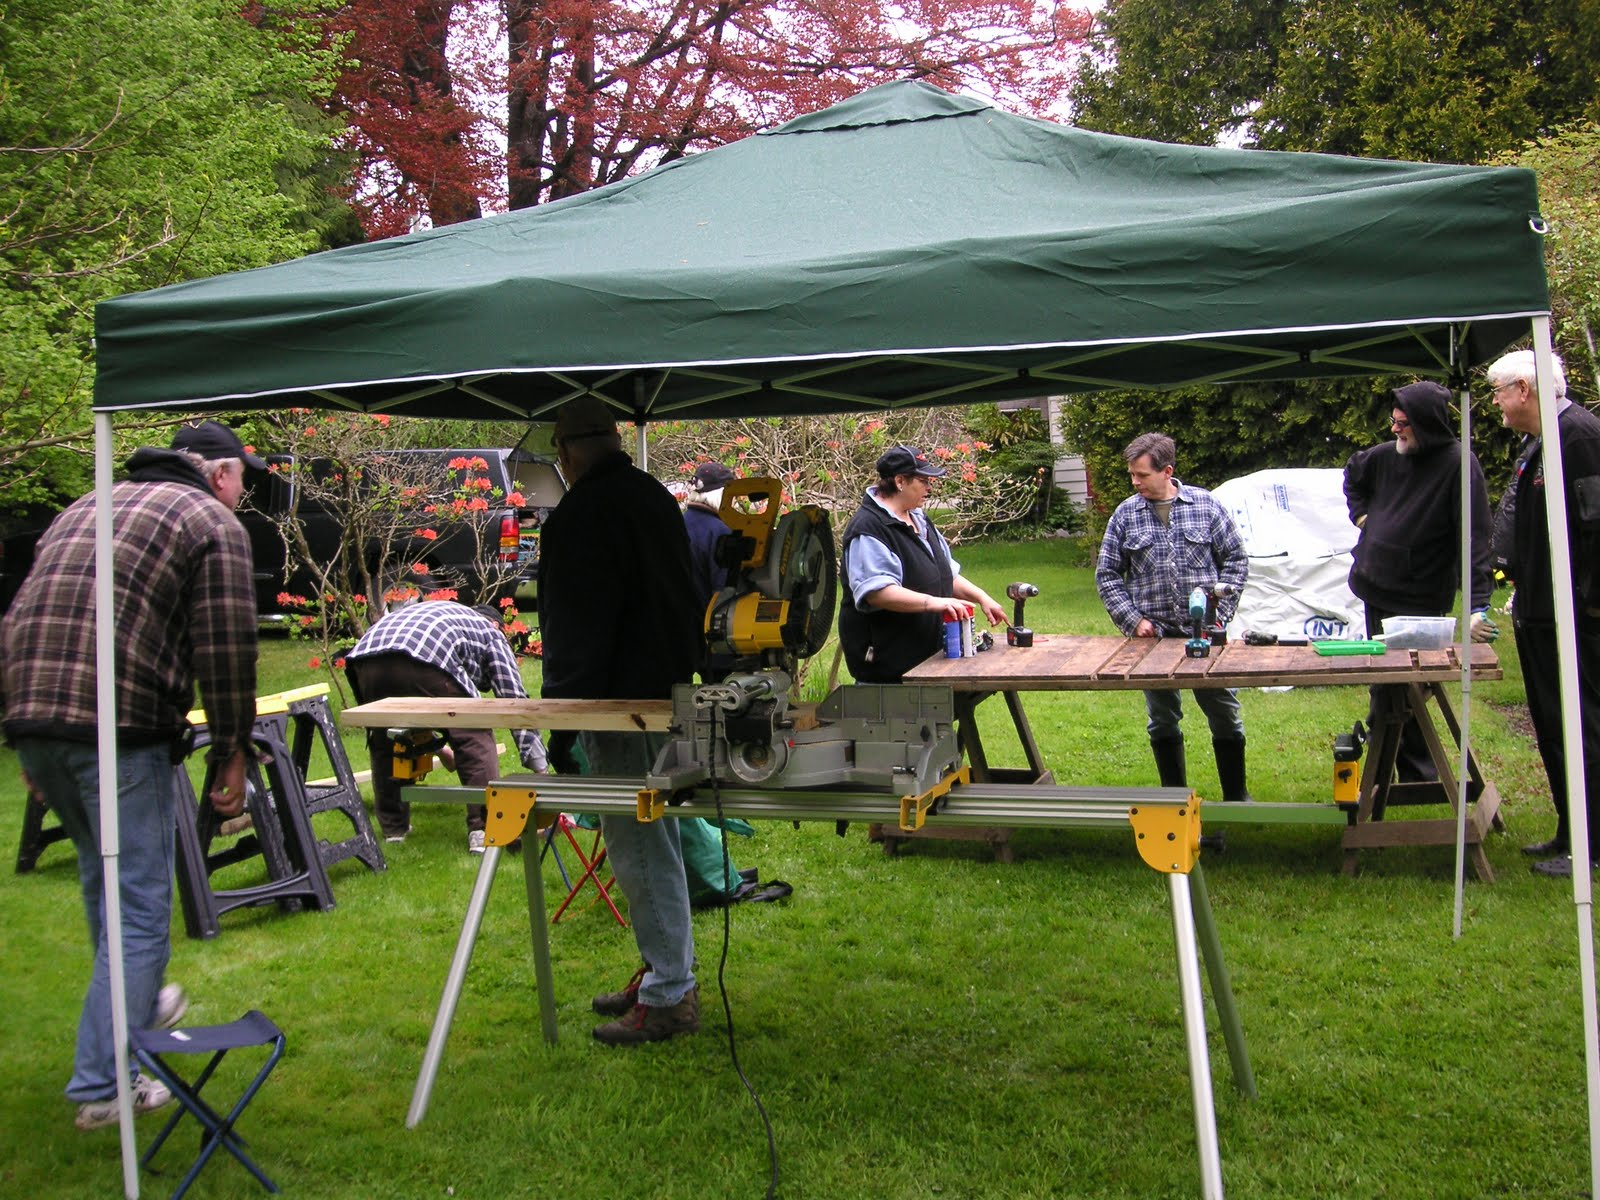 It rained lightly at first but the tent kept the power tools dry. We gardeners werenu0027t put off by a bit of ... & Ladner Community Garden: Build a Bed day for the Community Garden